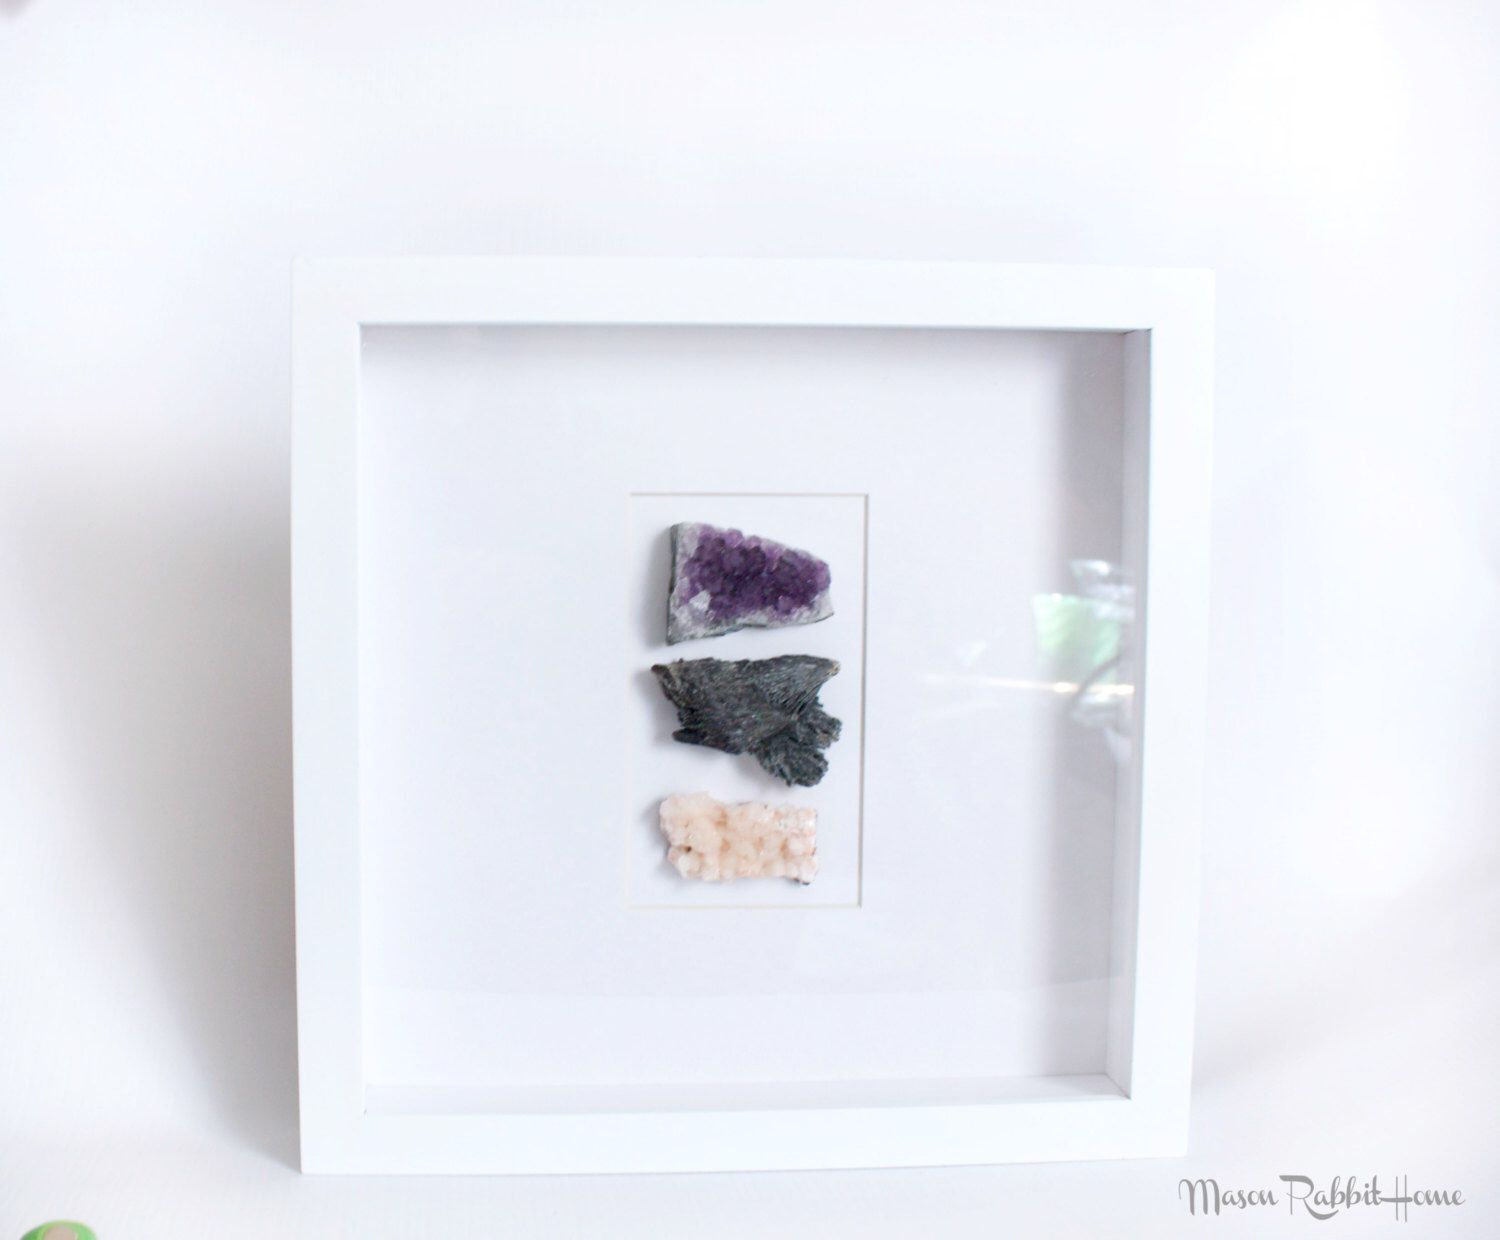 Framed Gemstones Wall Art   Gemstone Decor, Framed Agate, Agate U0026 Geode  Decor,